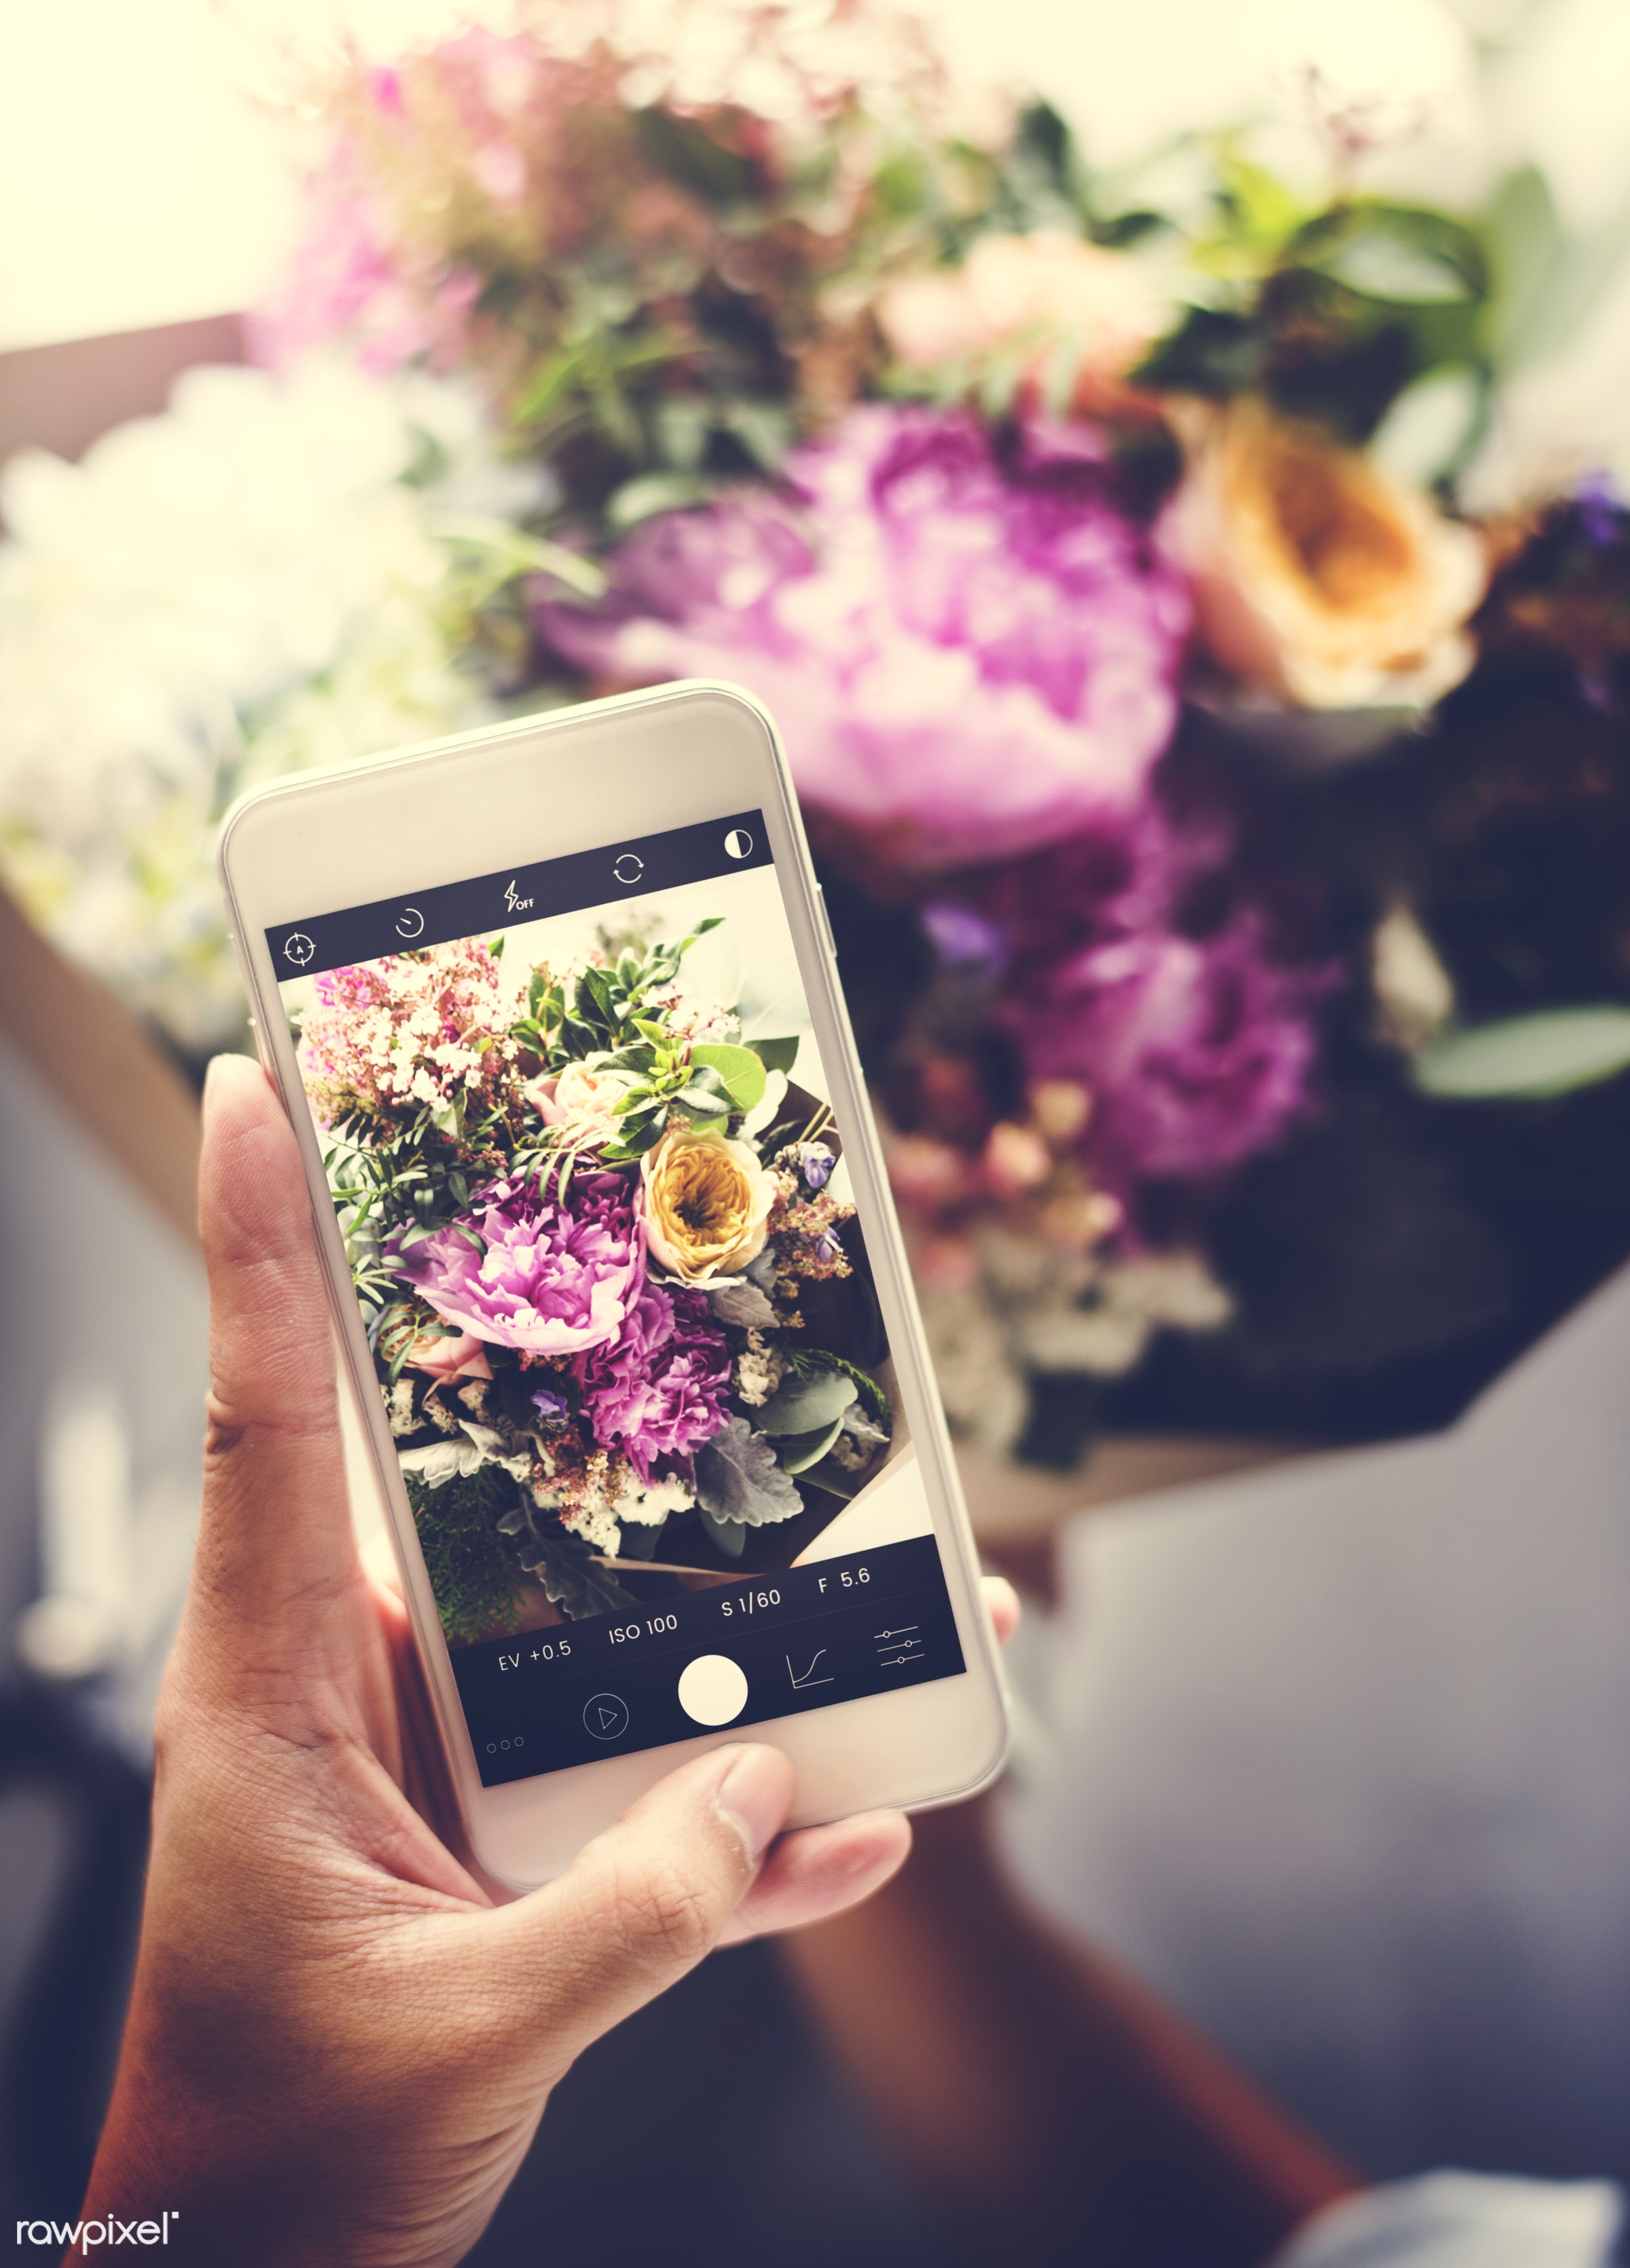 using, detail, person, phone, technology, holding, snap, show, people, decor, nature, capture, flowers, screen, refreshment...